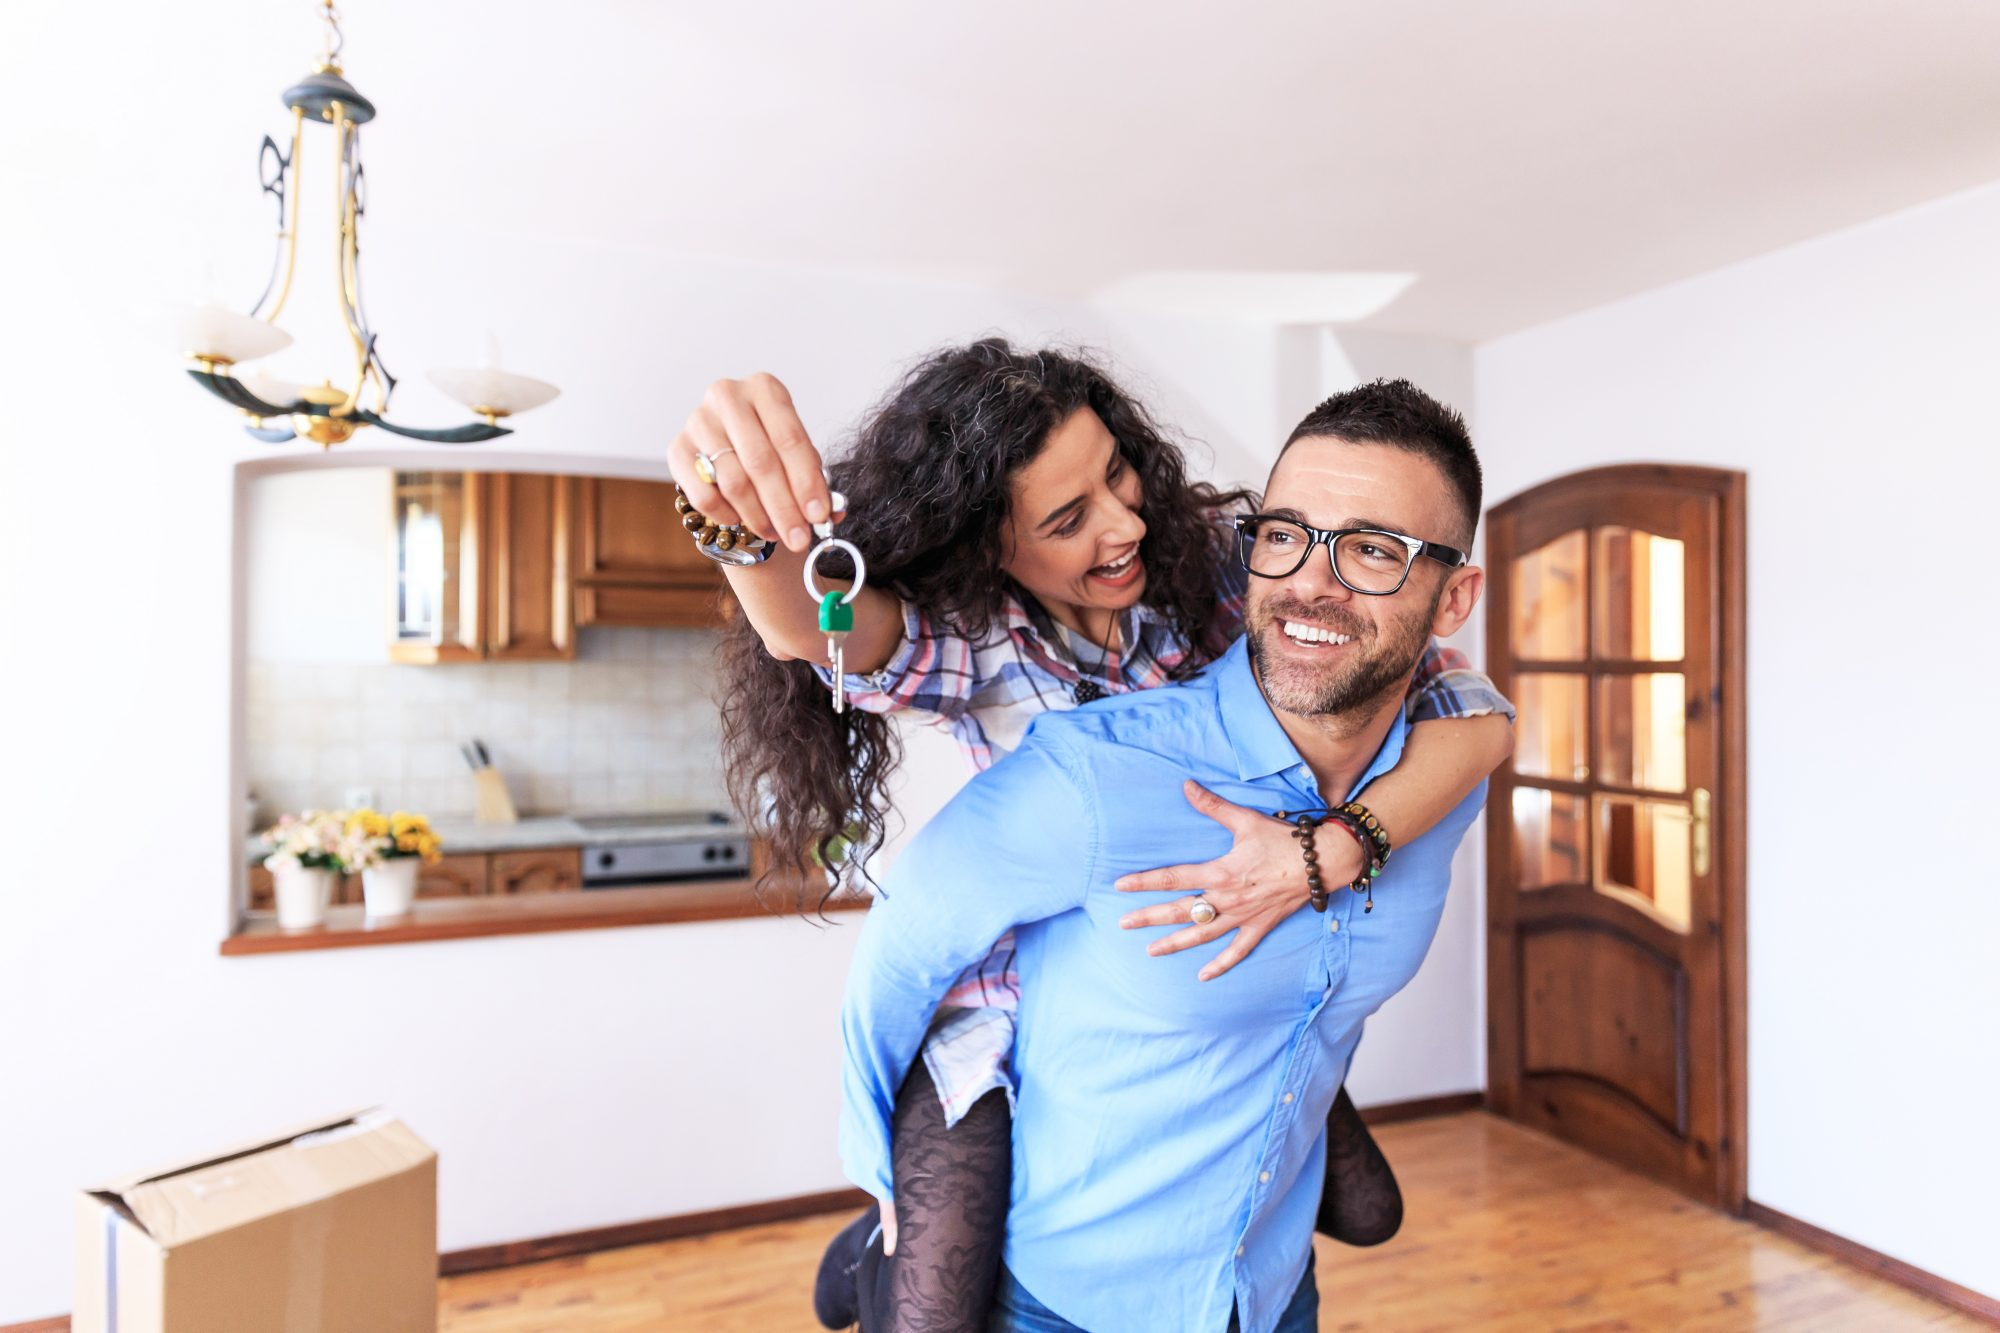 Woman piggyback's on husband while holding their new house key in her hand.